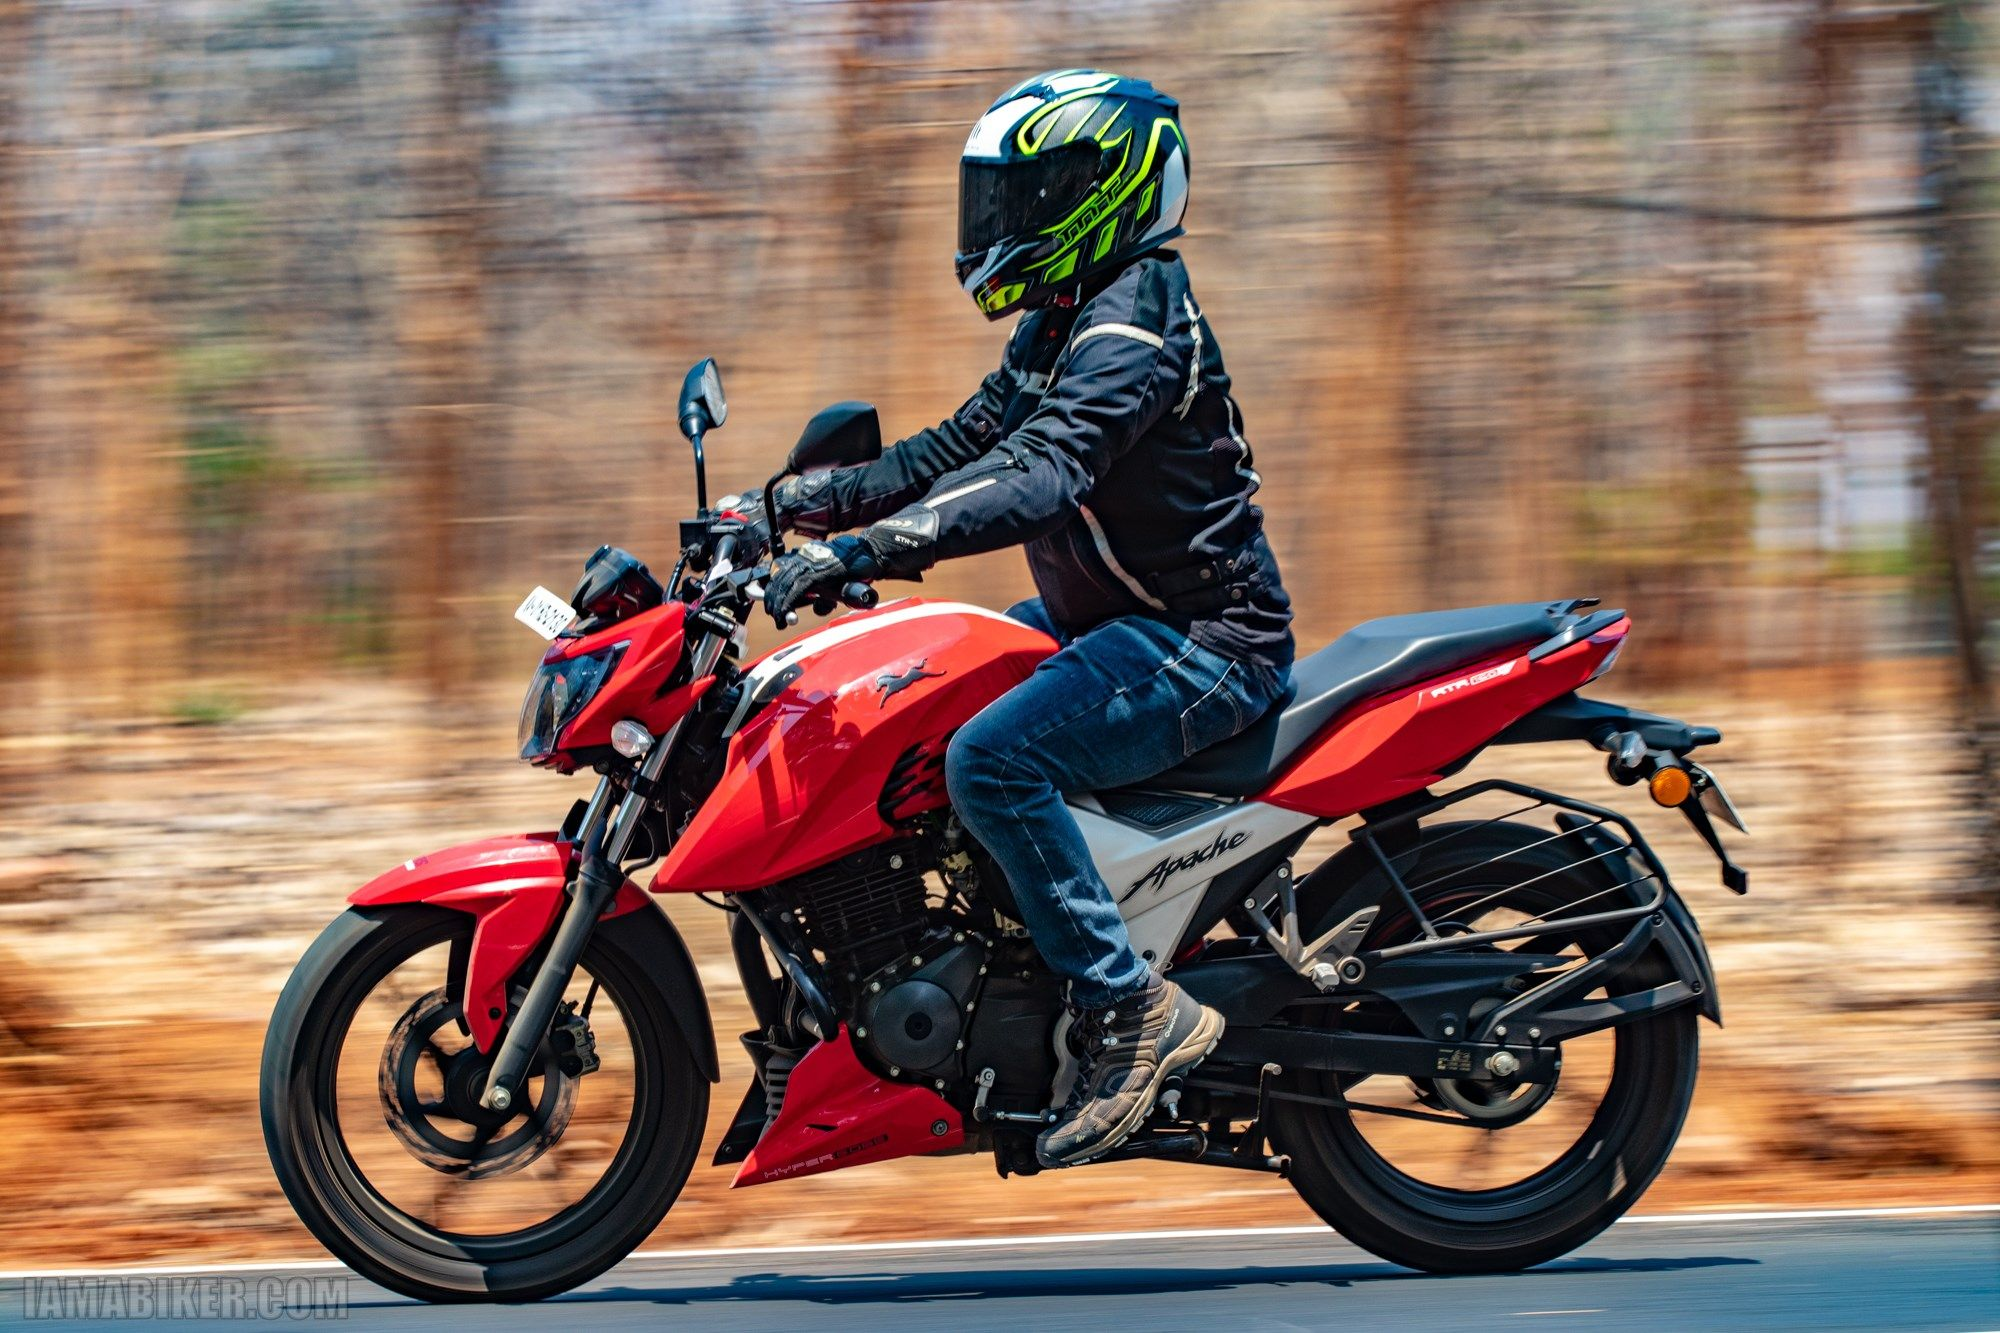 Tvs Apache Rtr 160 4v Road Review True Little Brother To The 200